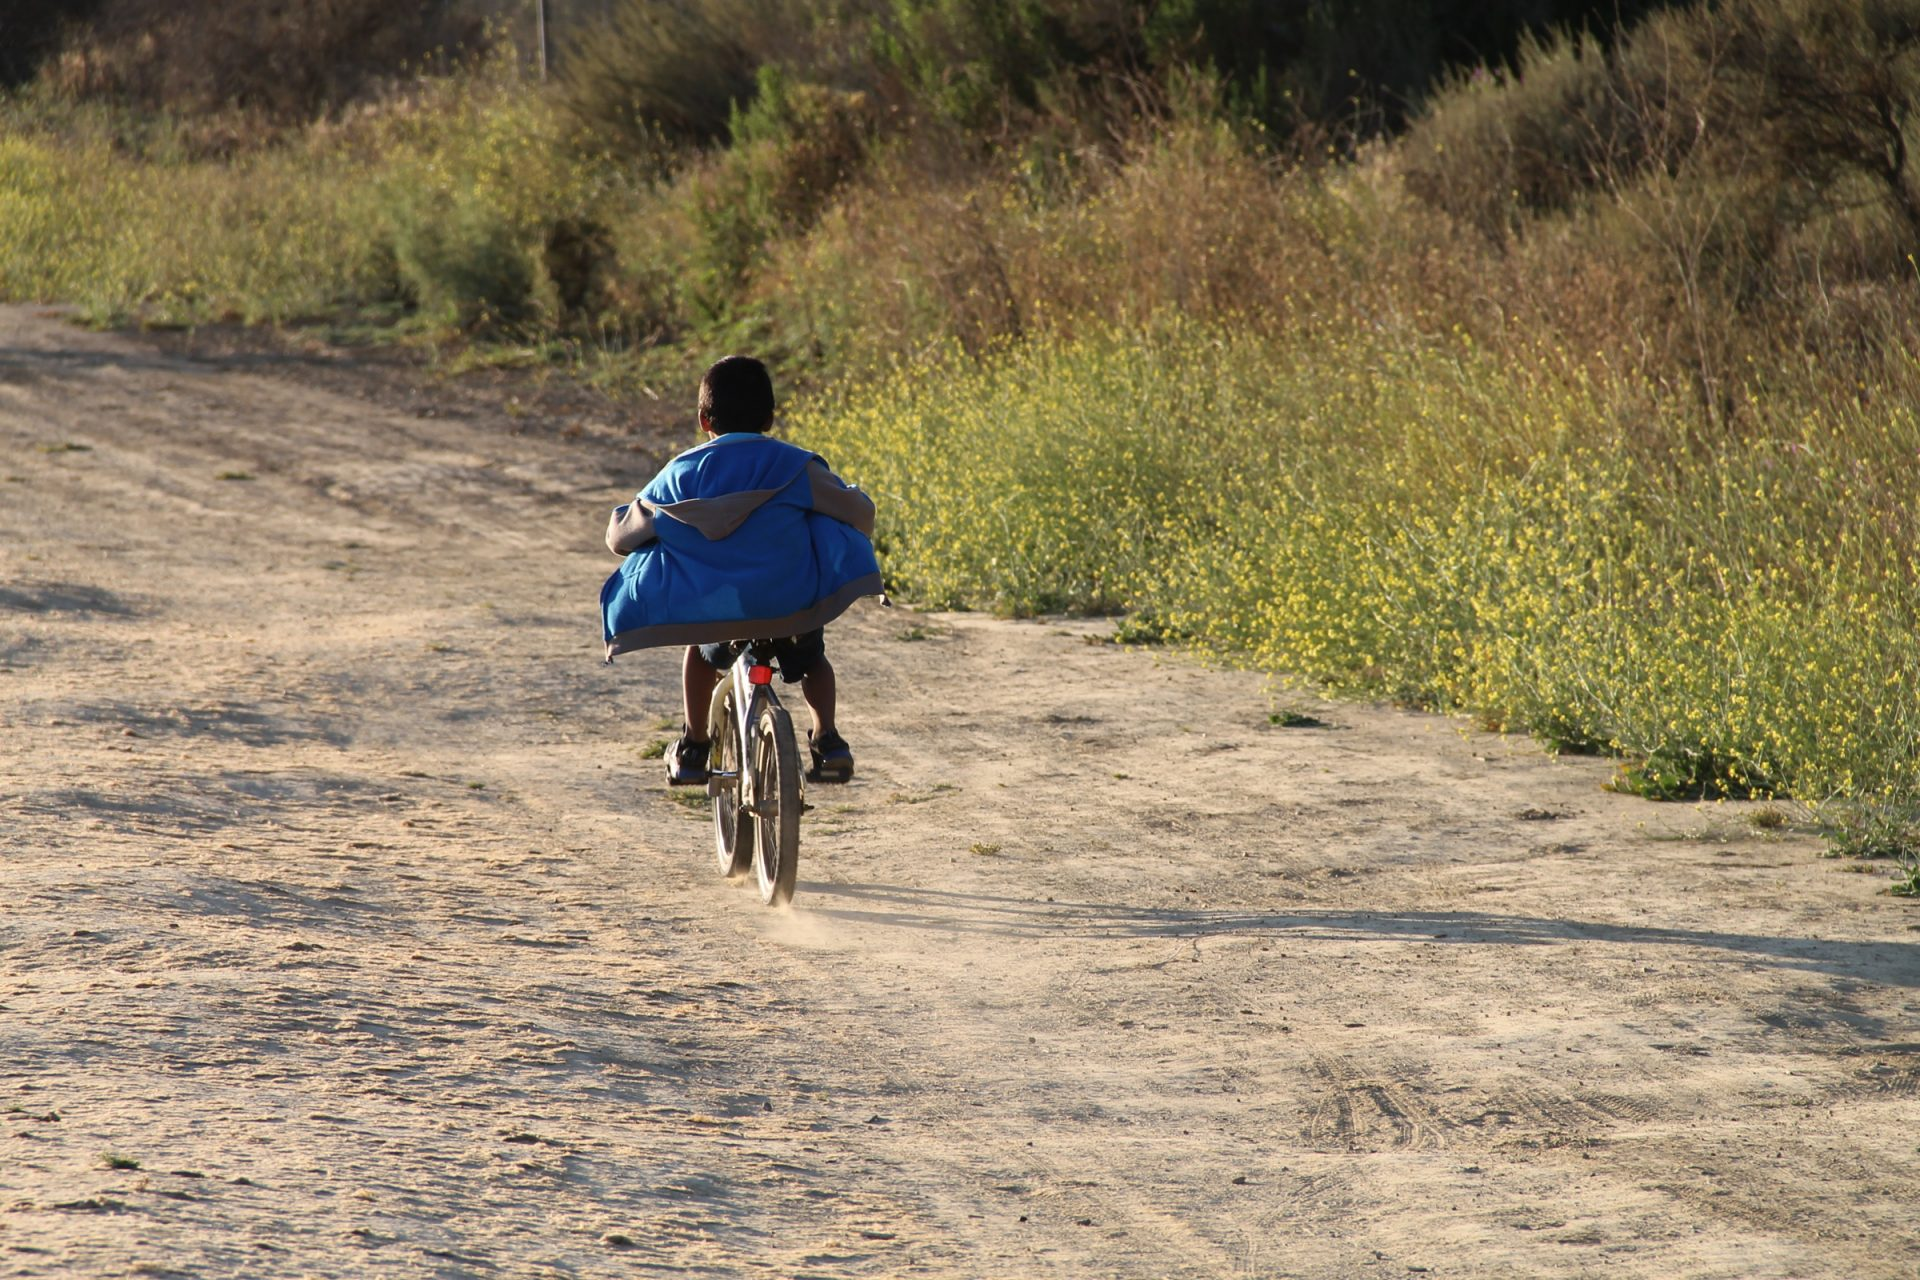 Boy Riding Bike Down Dirt Path